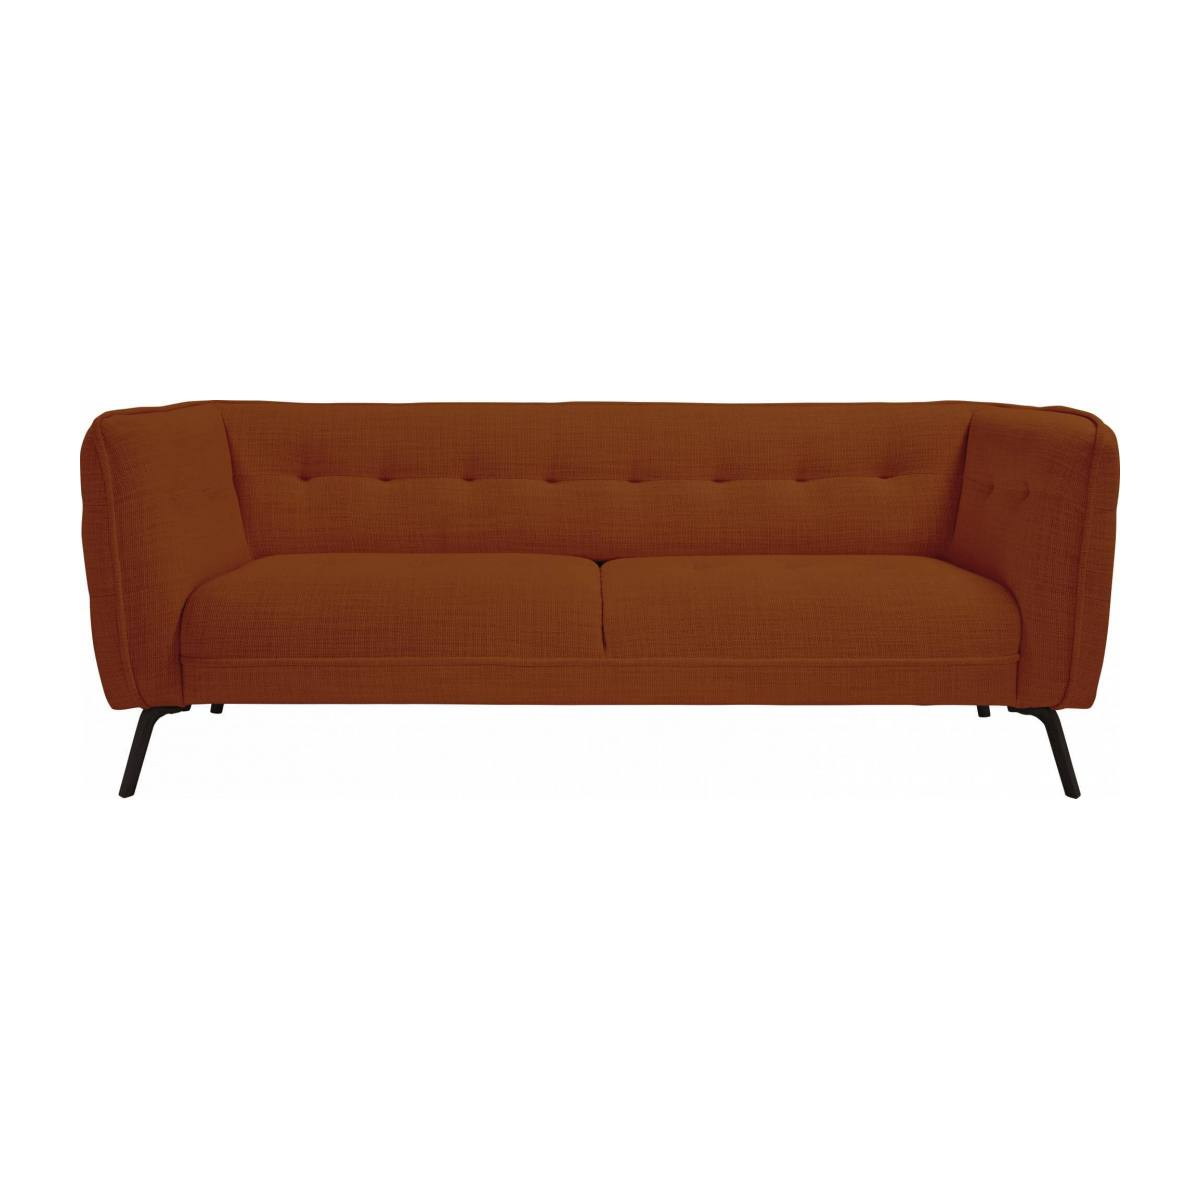 3 seater sofa in Fasoli fabric, warm red rock and dark legs n°1